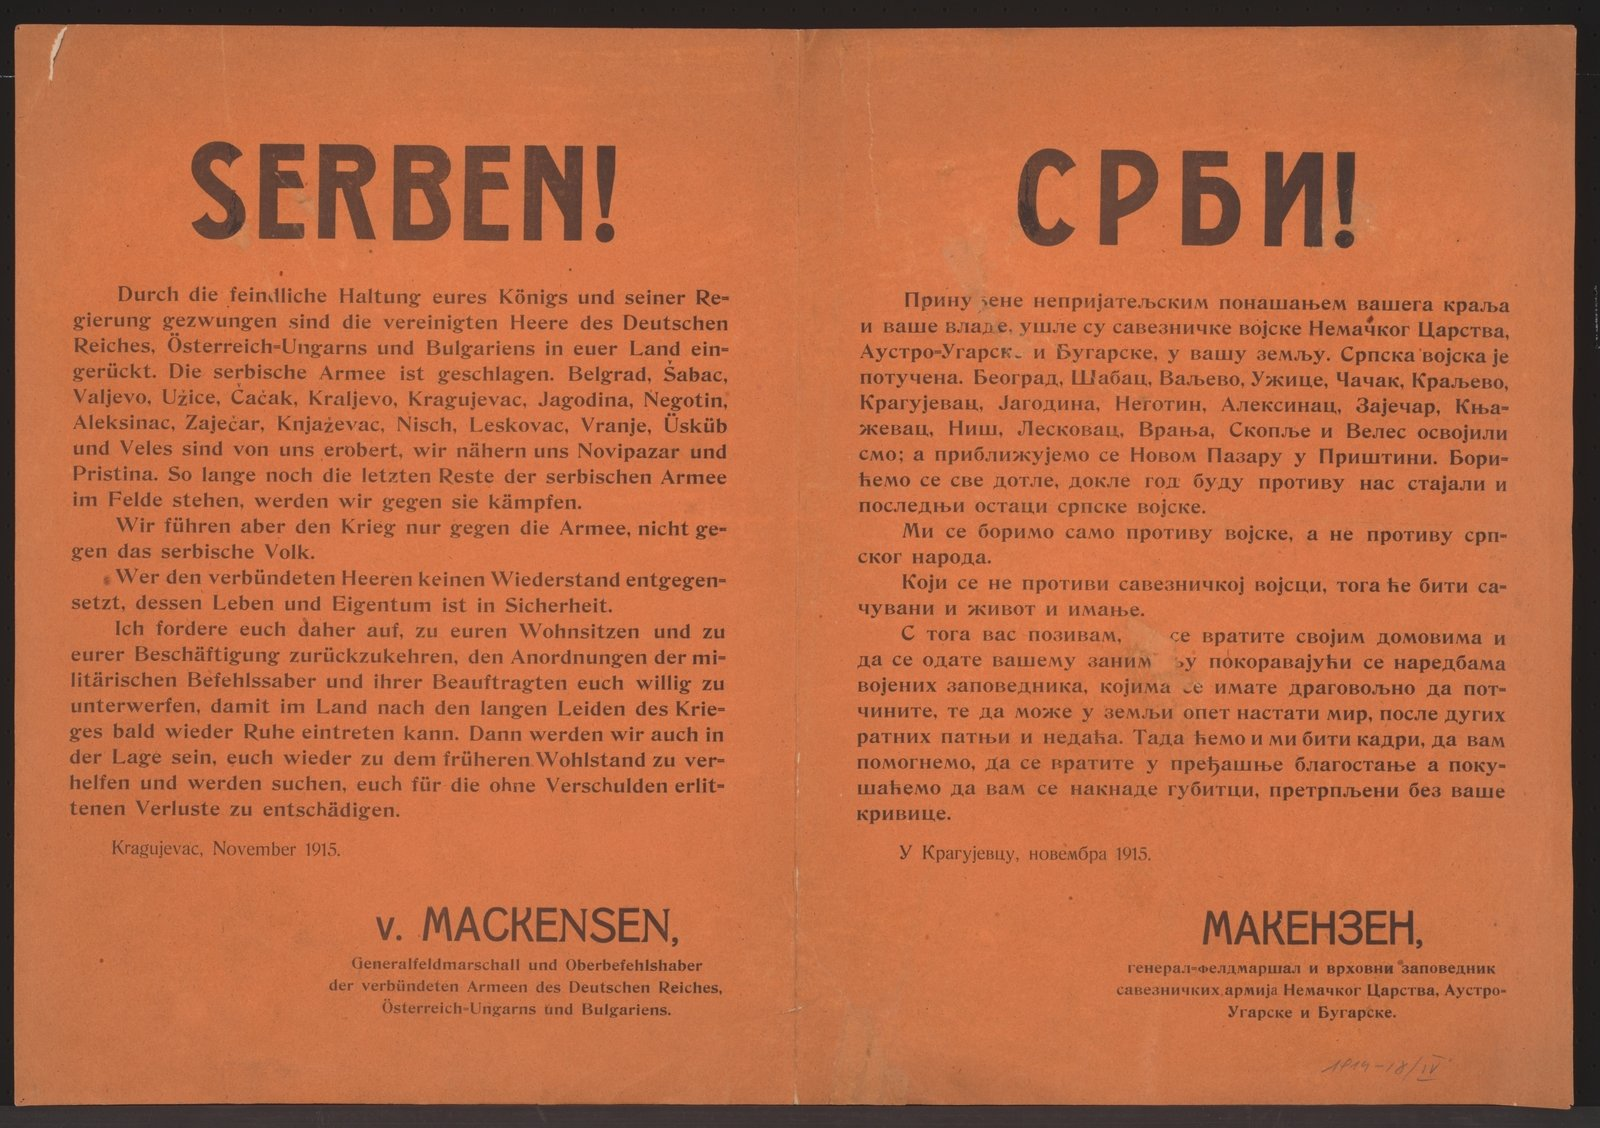 The Serbian population is asked to support the army of occupation, 1915-11 Kragujevac, Österreichische Nationalbibliothek - Austrian National Library, Public Domain Mark